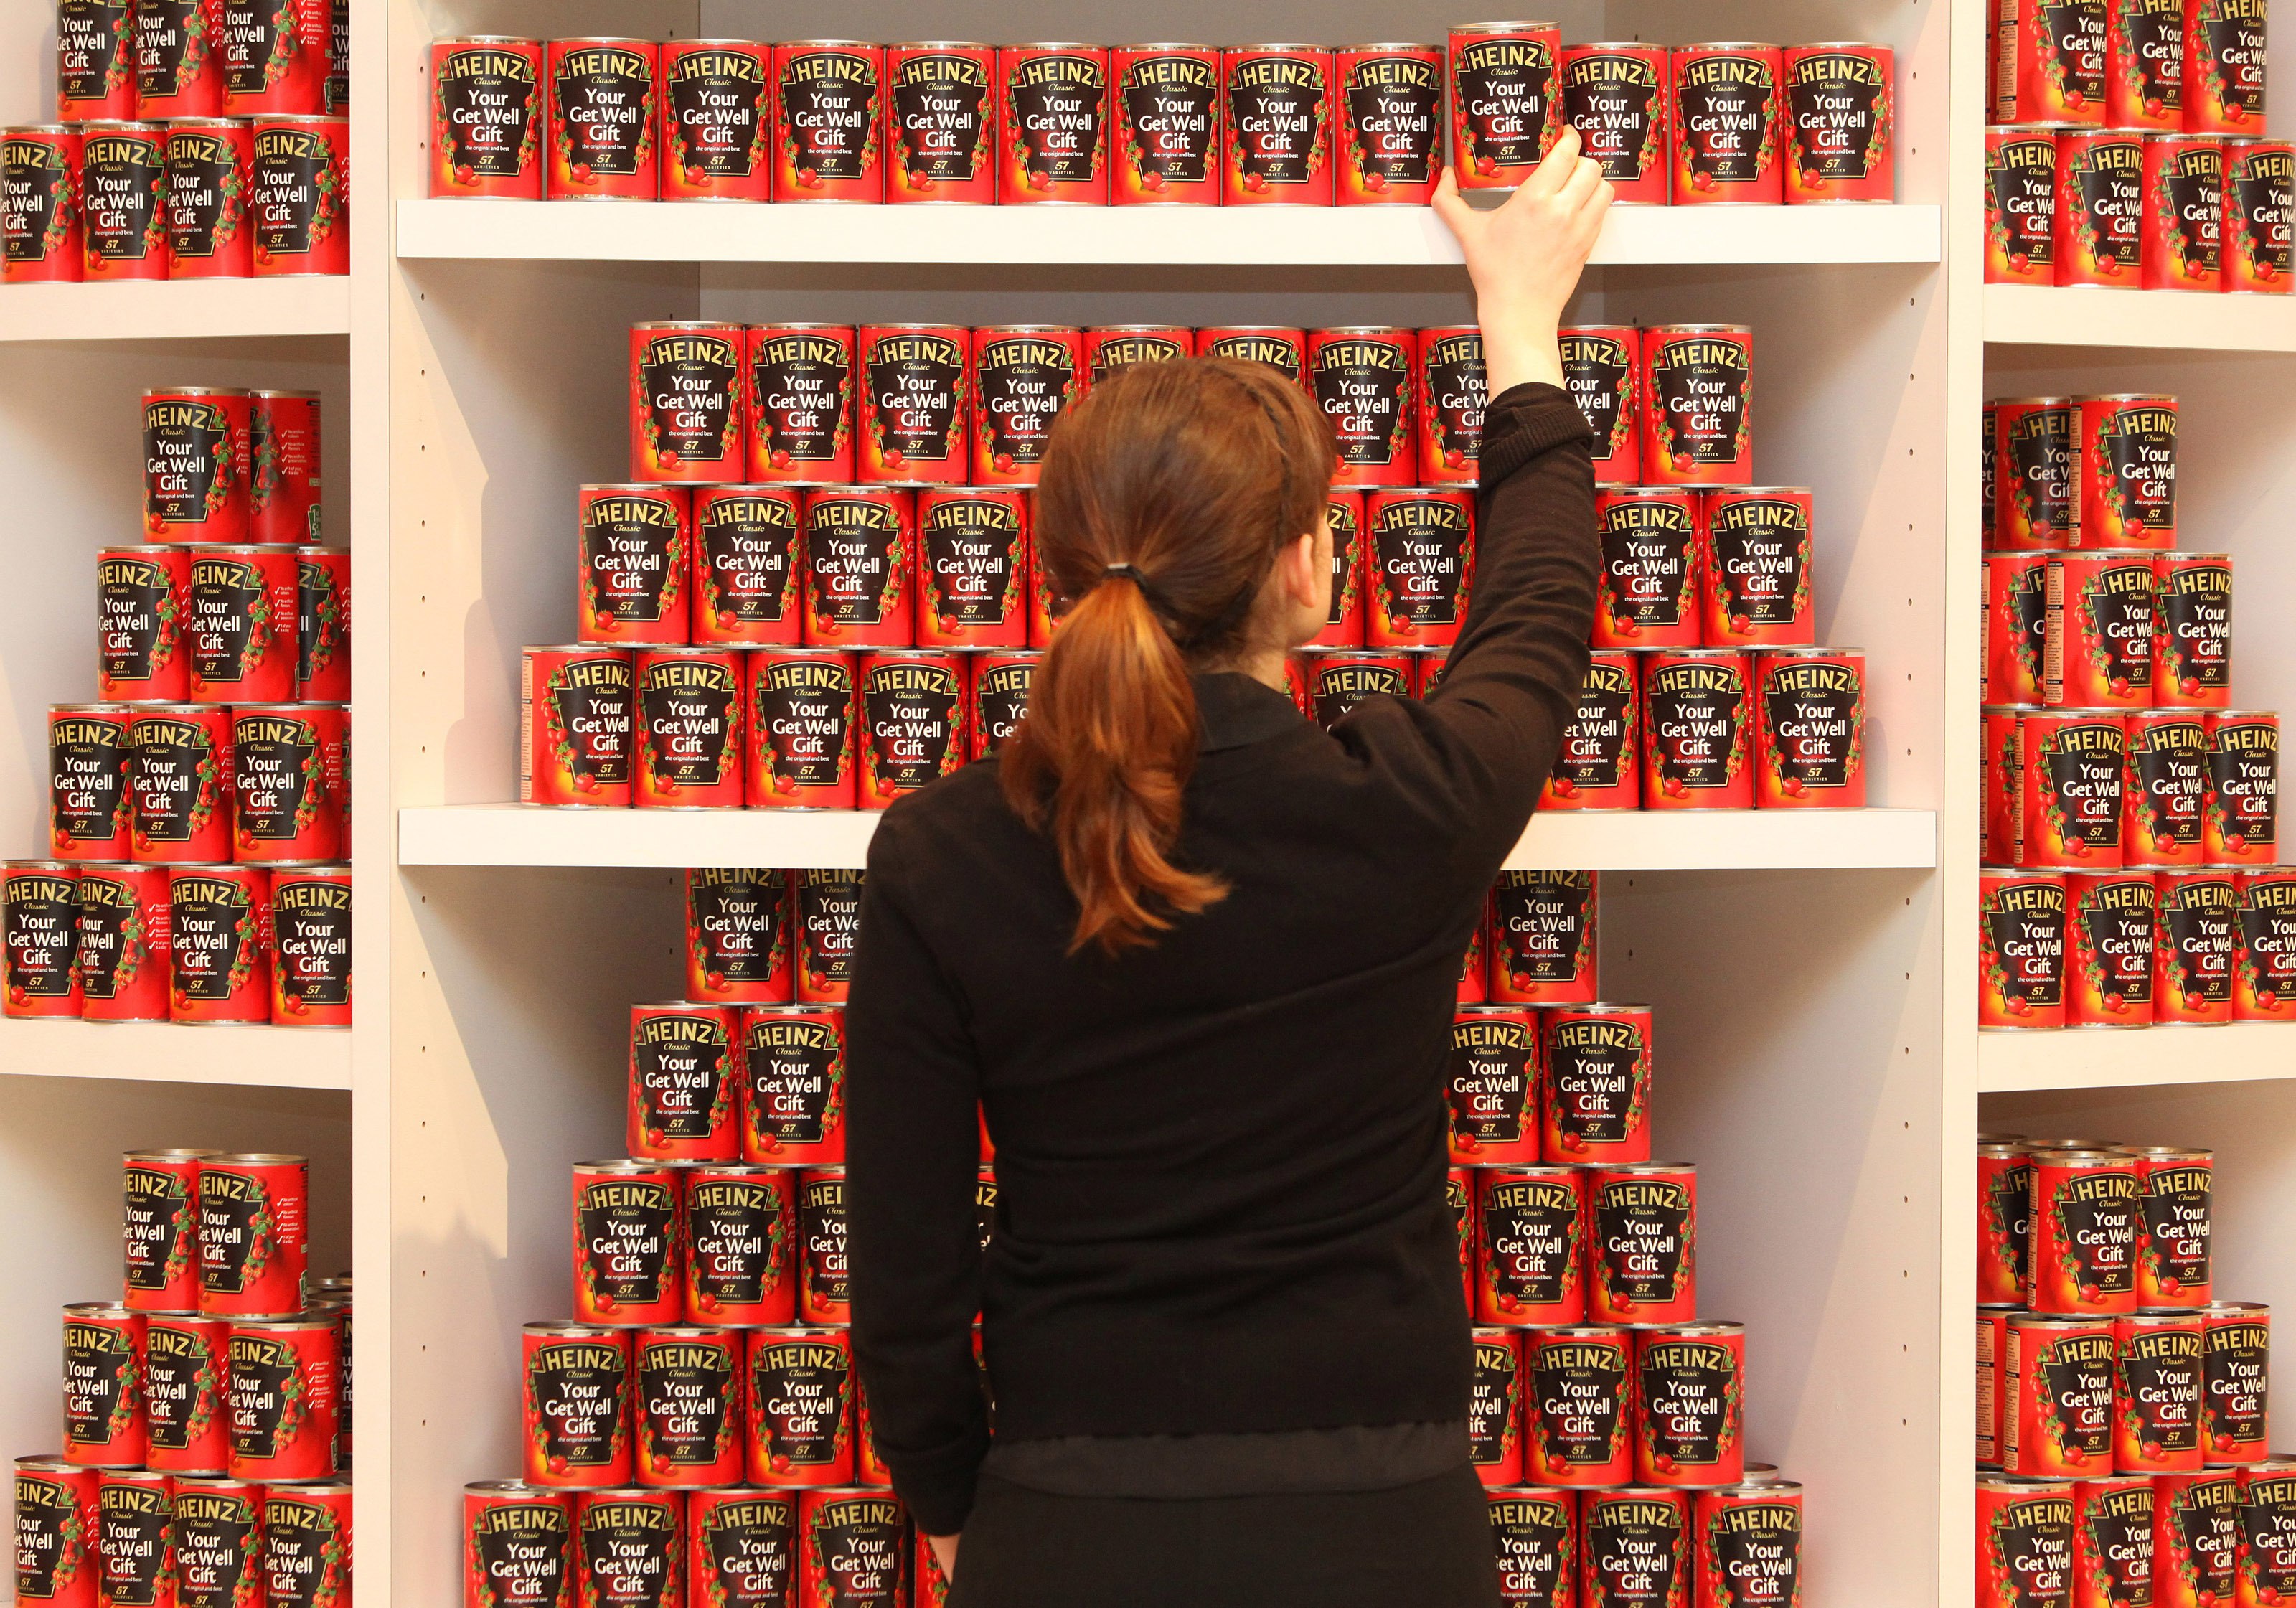 Shelves packed with Heinz